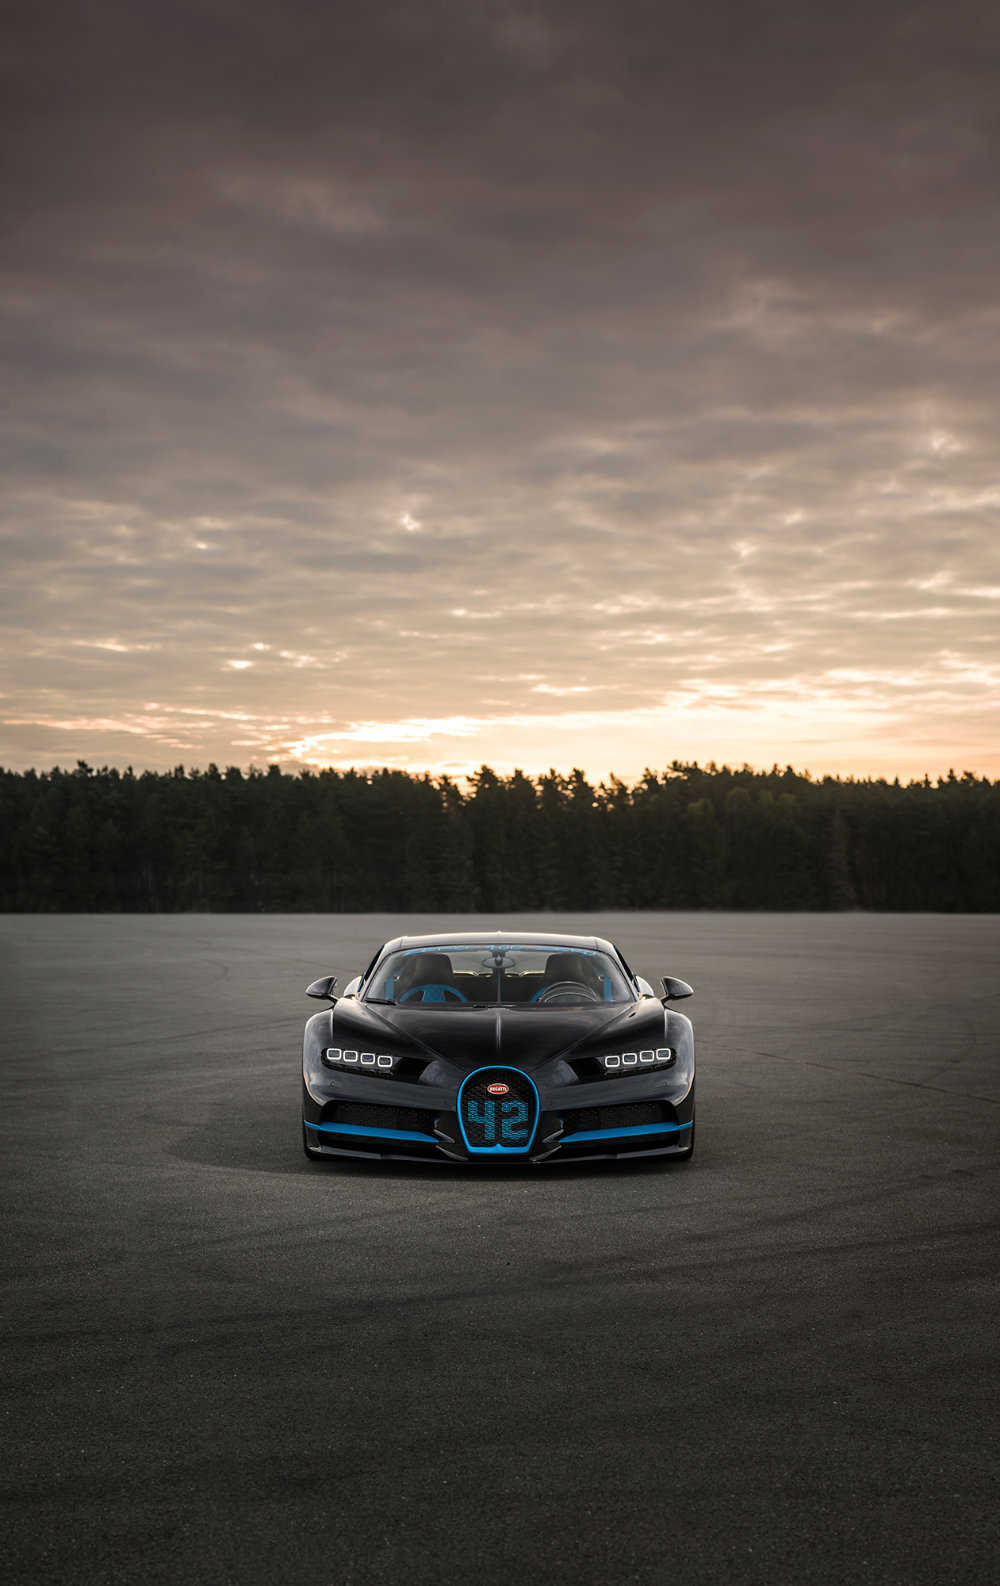 Bugatti Chiron 0-400-0 - GFWilliams Automotive Photographer